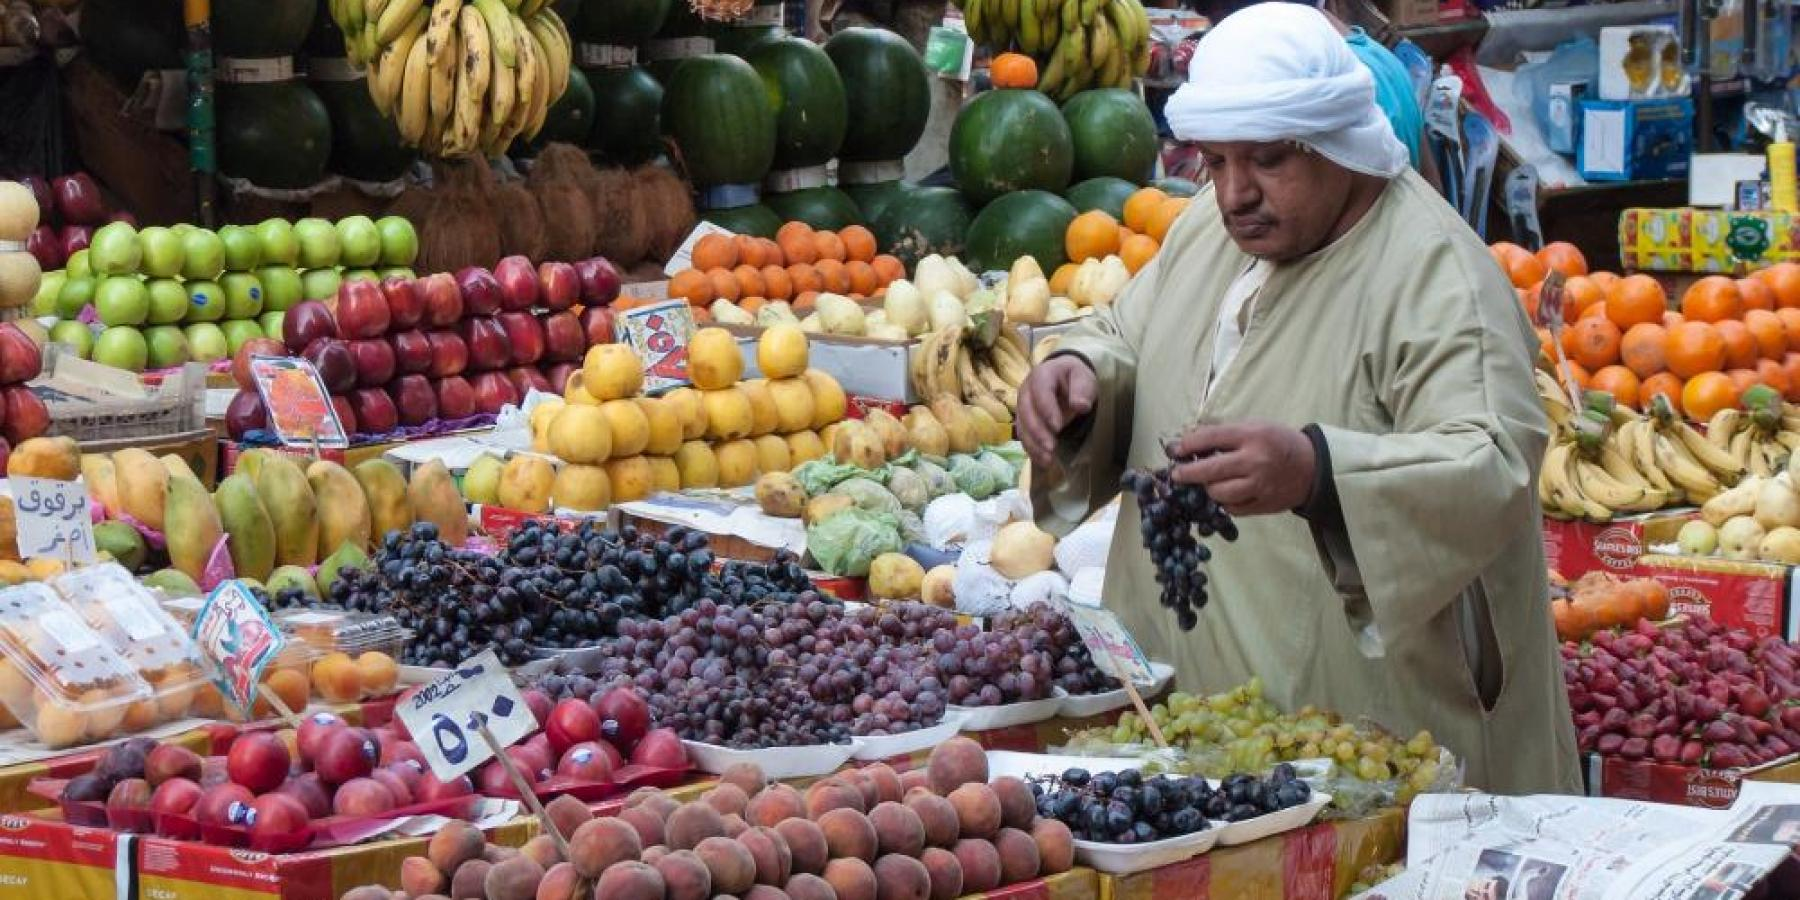 Fruit market in Cairo, Egypt © Cuyahoga from Pixabay